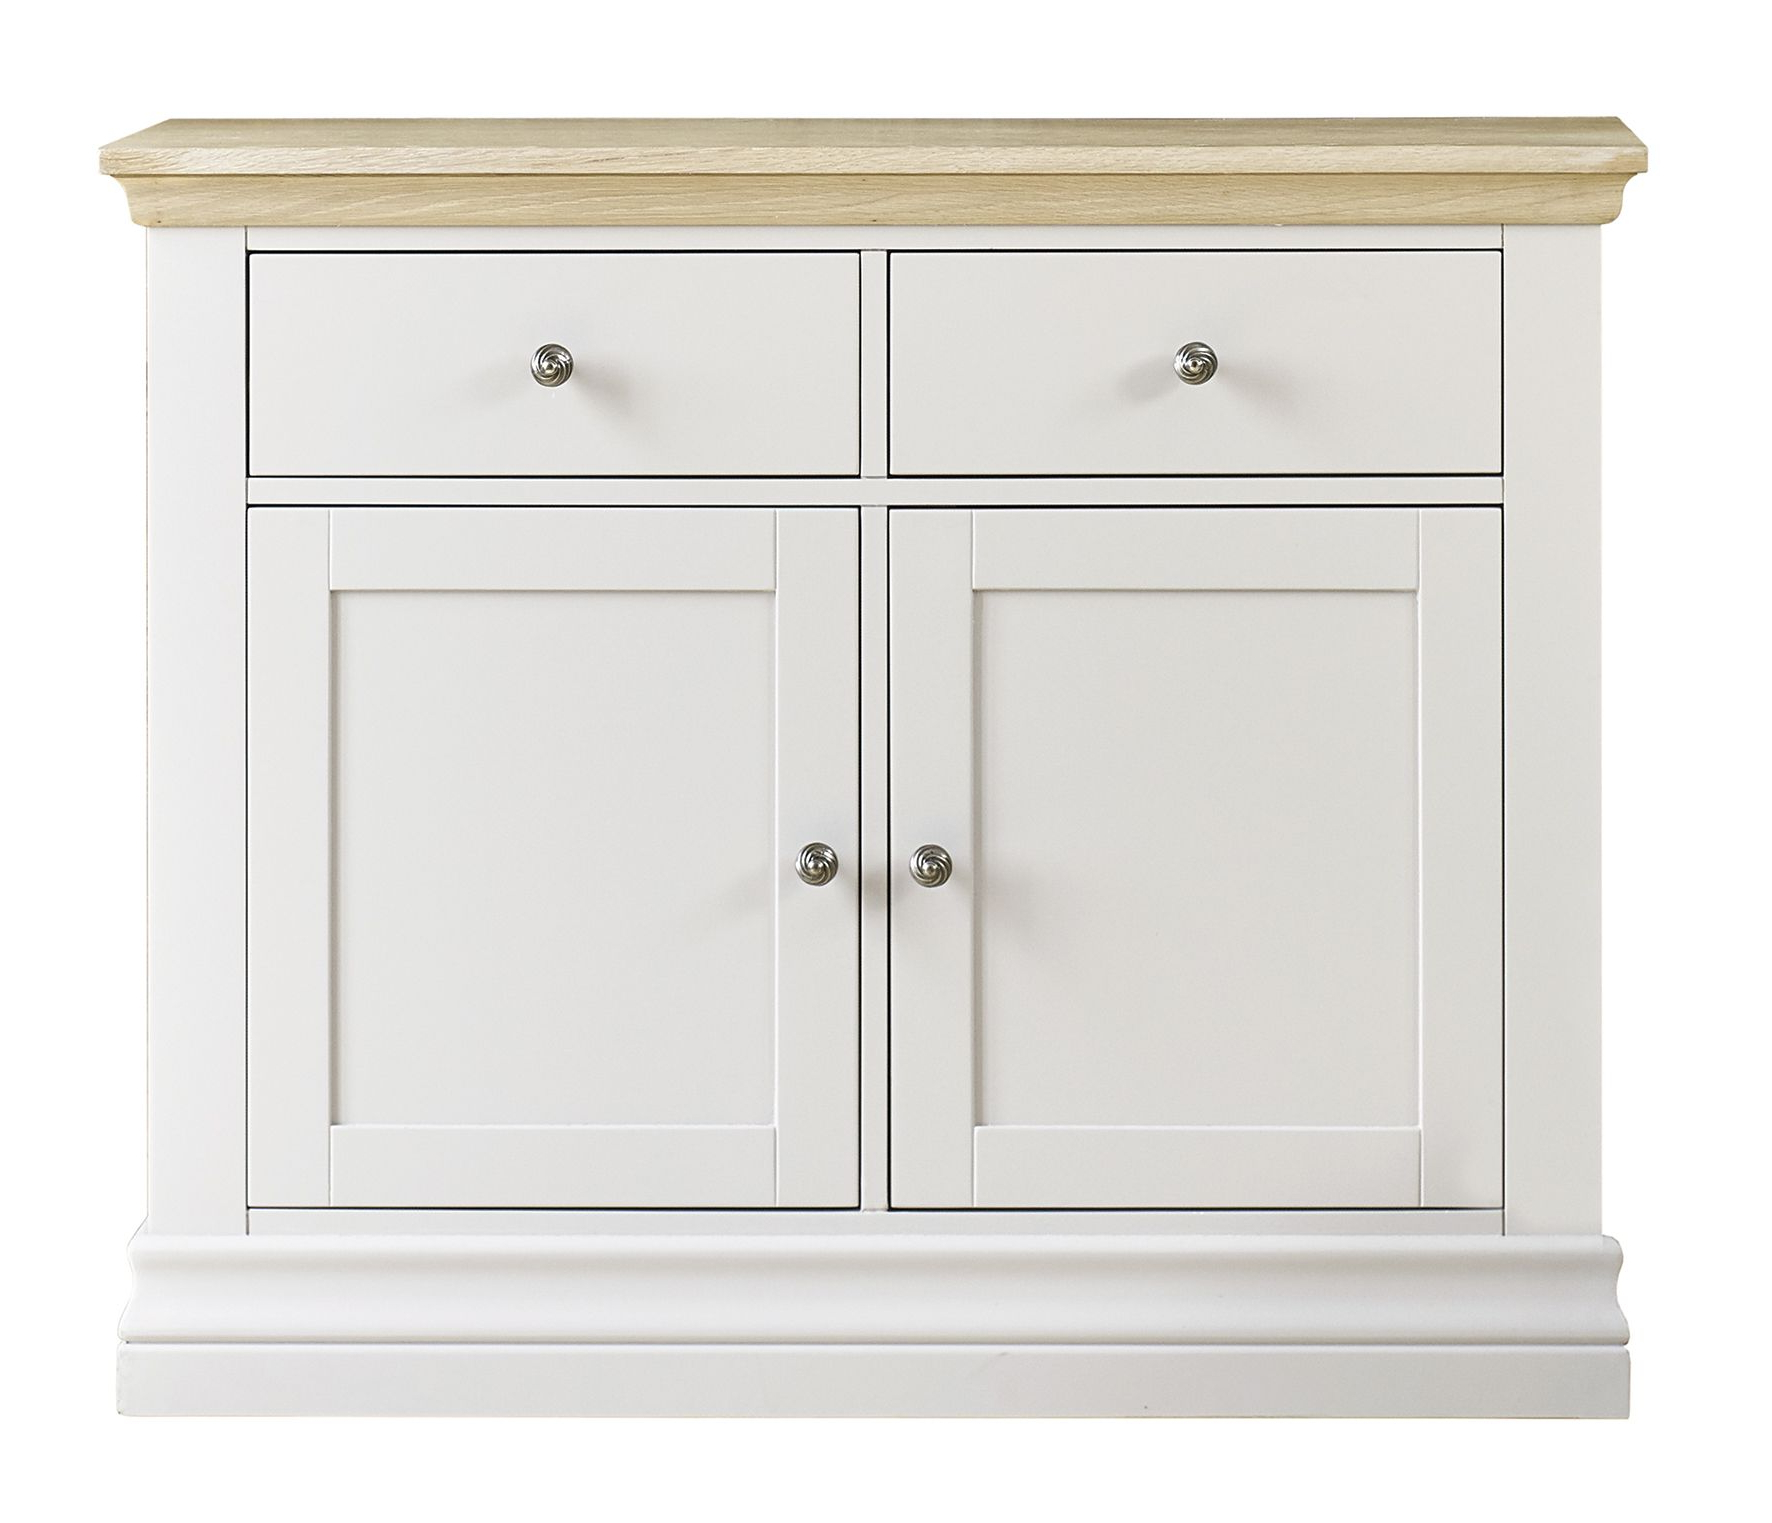 Corndell Annecy Small Sideboard Hand Painted In A Clean With Regard To Annecy Sideboards (View 13 of 20)